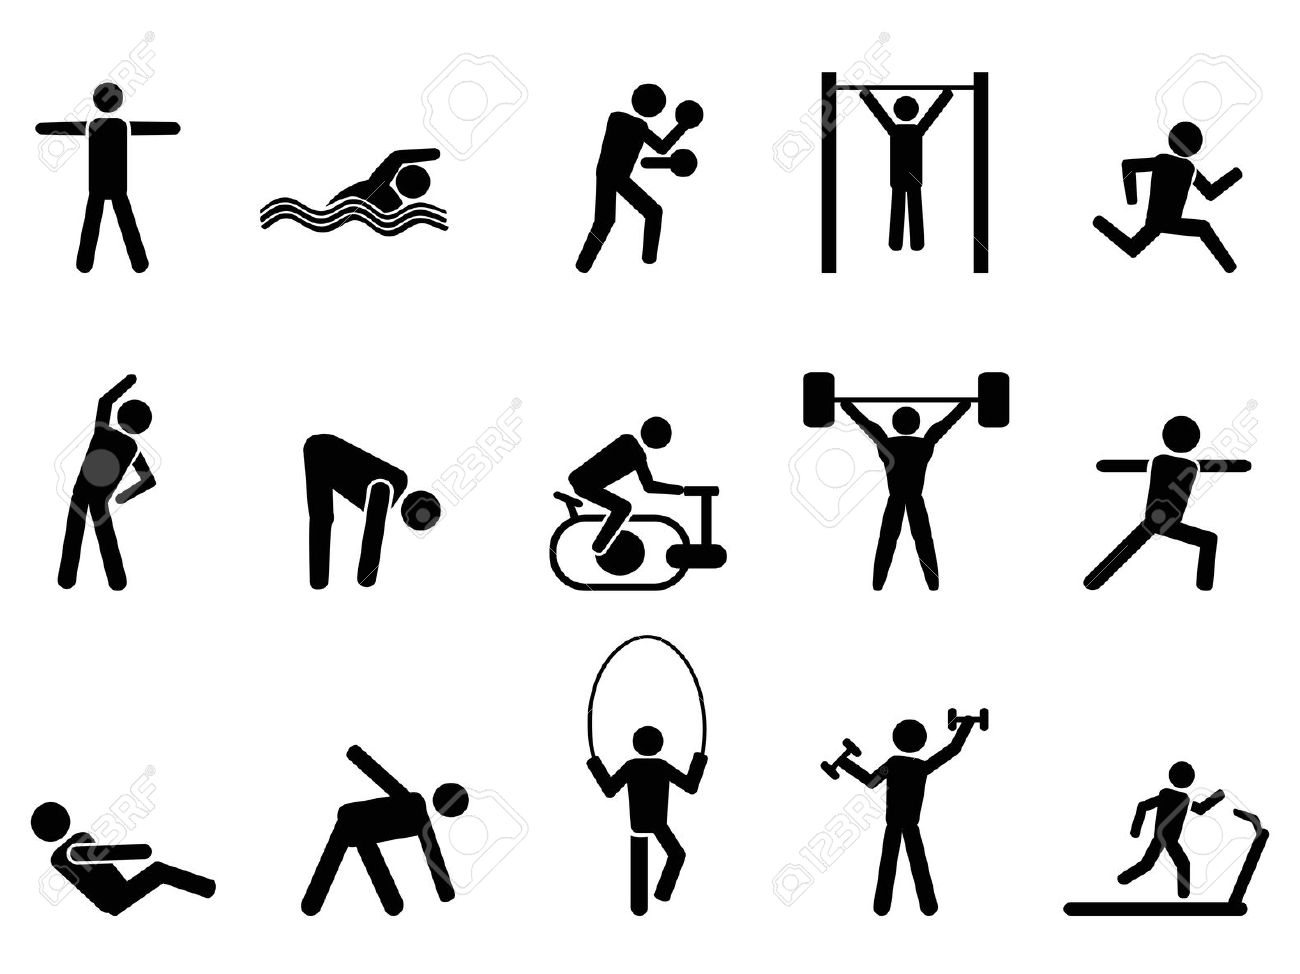 Silhouette illustration of figure. Fitness clipart physical wellness